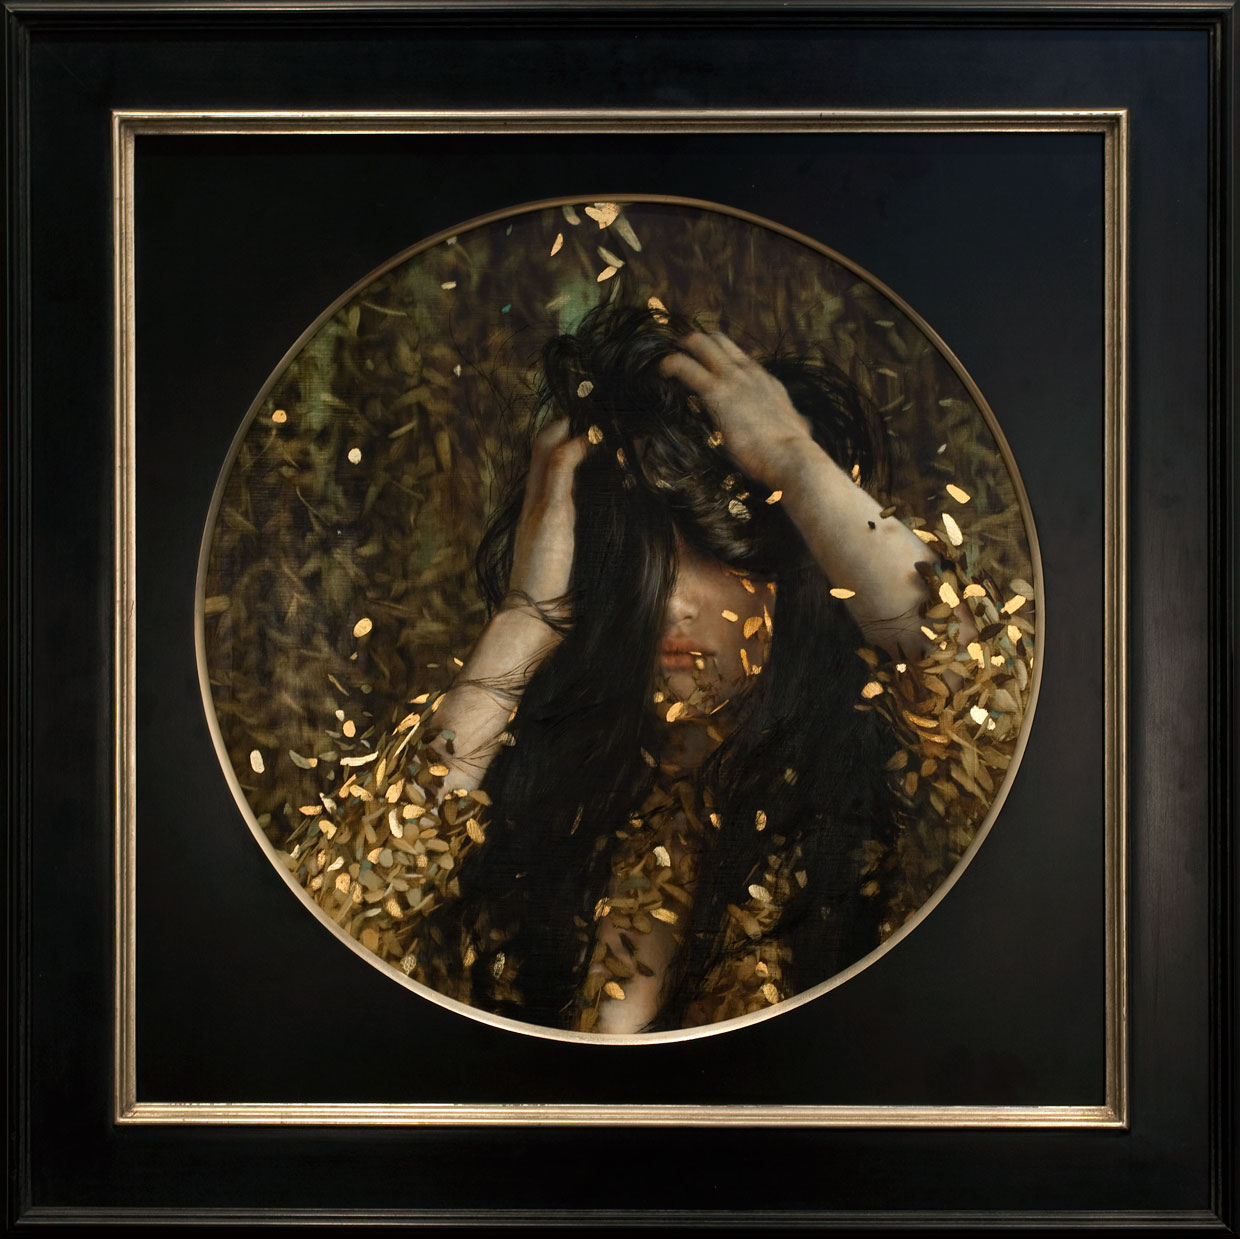 Versine.   20 x 20 inches.  Oil and gold leaf on linen.  Private collection